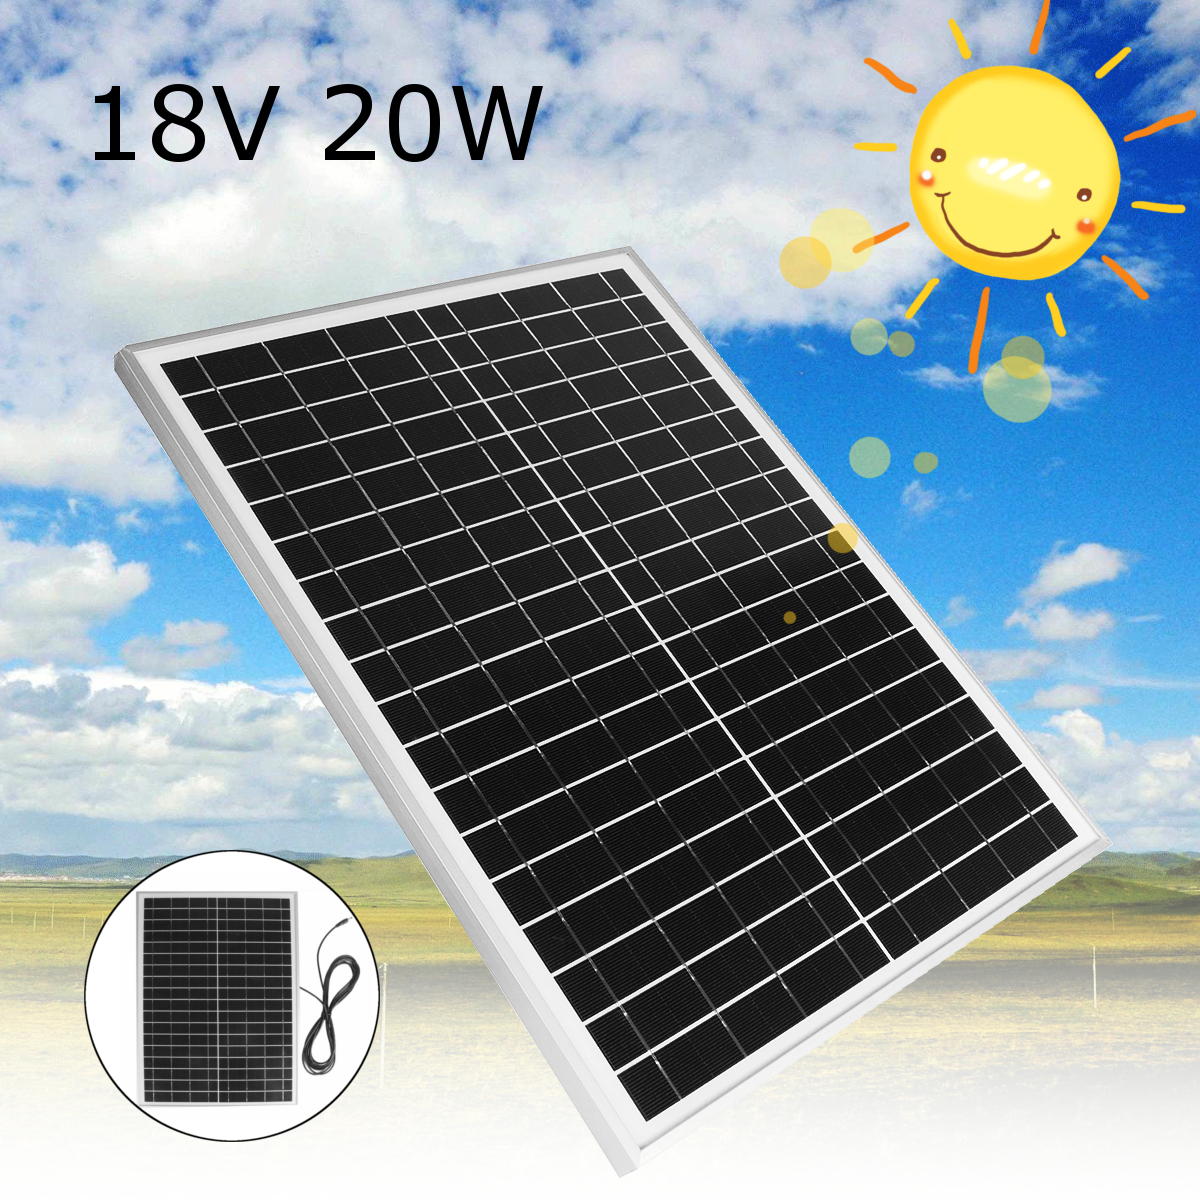 цена на 20W 18V Polycrystalline silicon Solar Panel module Cell for DIY Battery Power Charge Module for Camping Caravan Boat 46*35*2cm